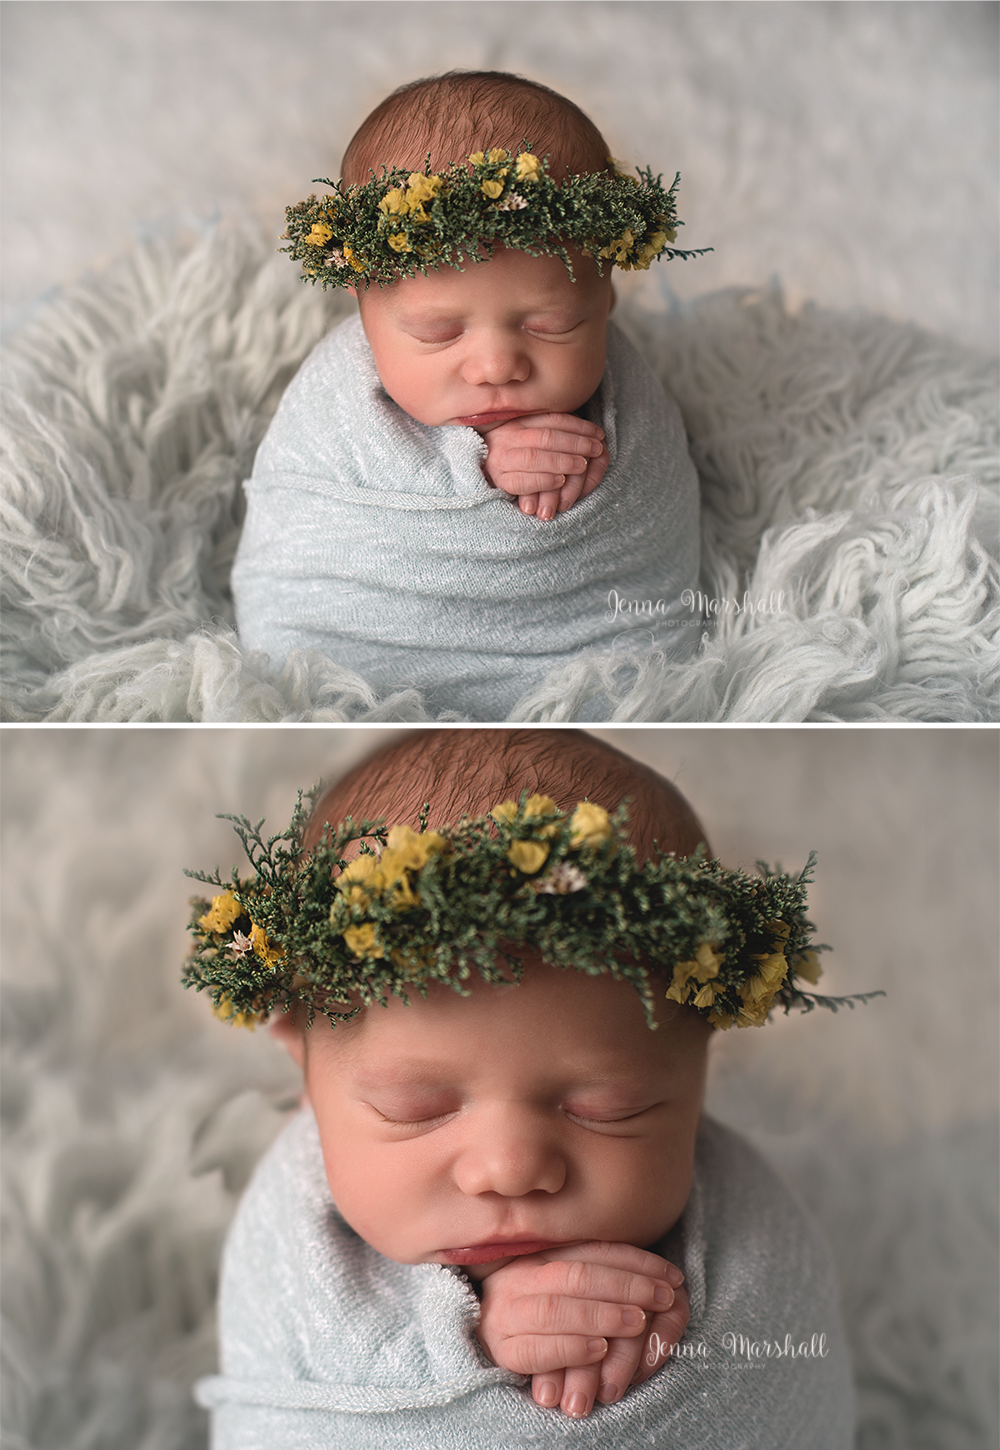 diptych-stevenage-baby-photographer-stevenage-hertfordshire-jenna-marshall